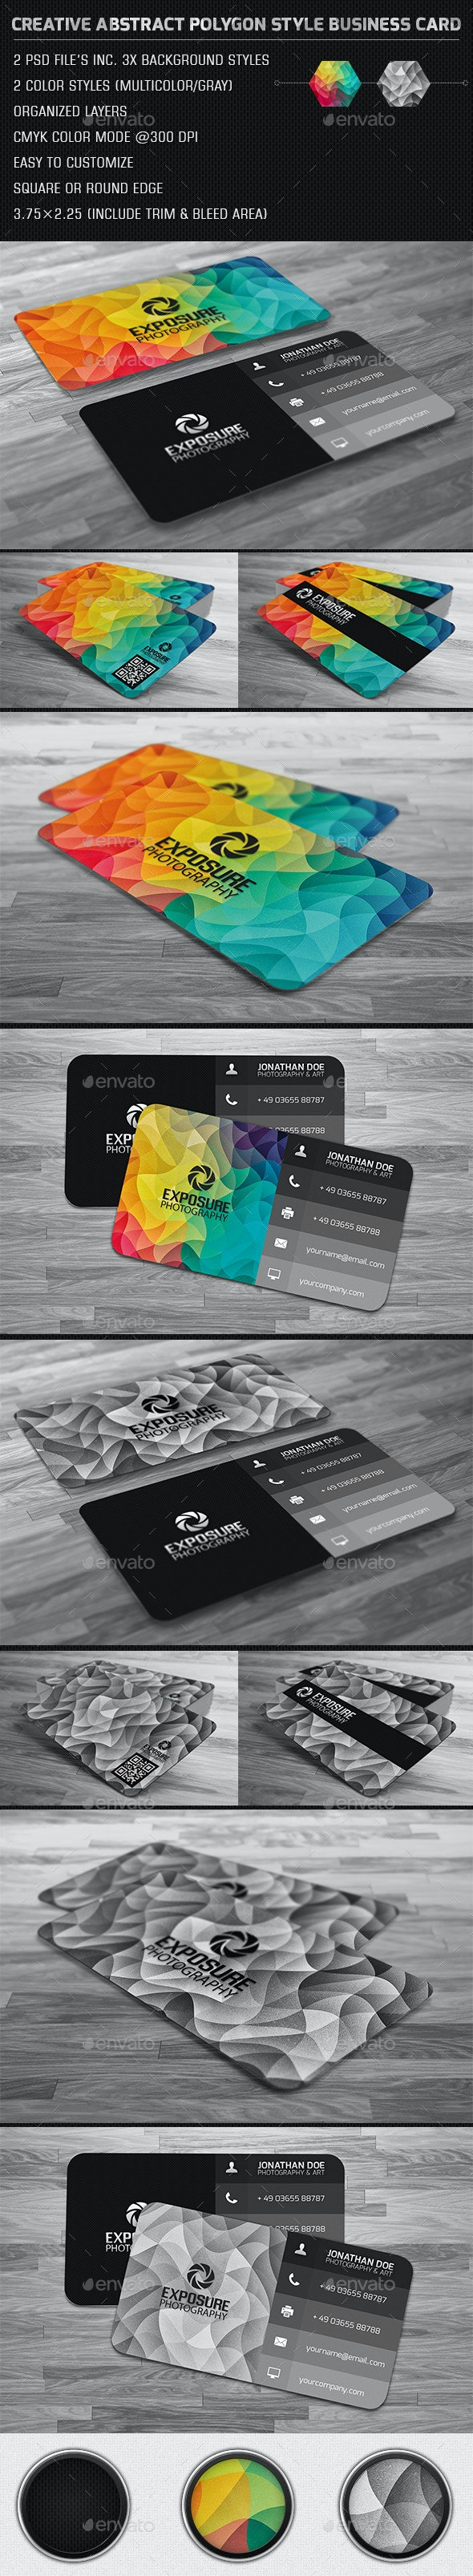 Creative Abstract Cubism Polygon Business Card - Creative Business Cards